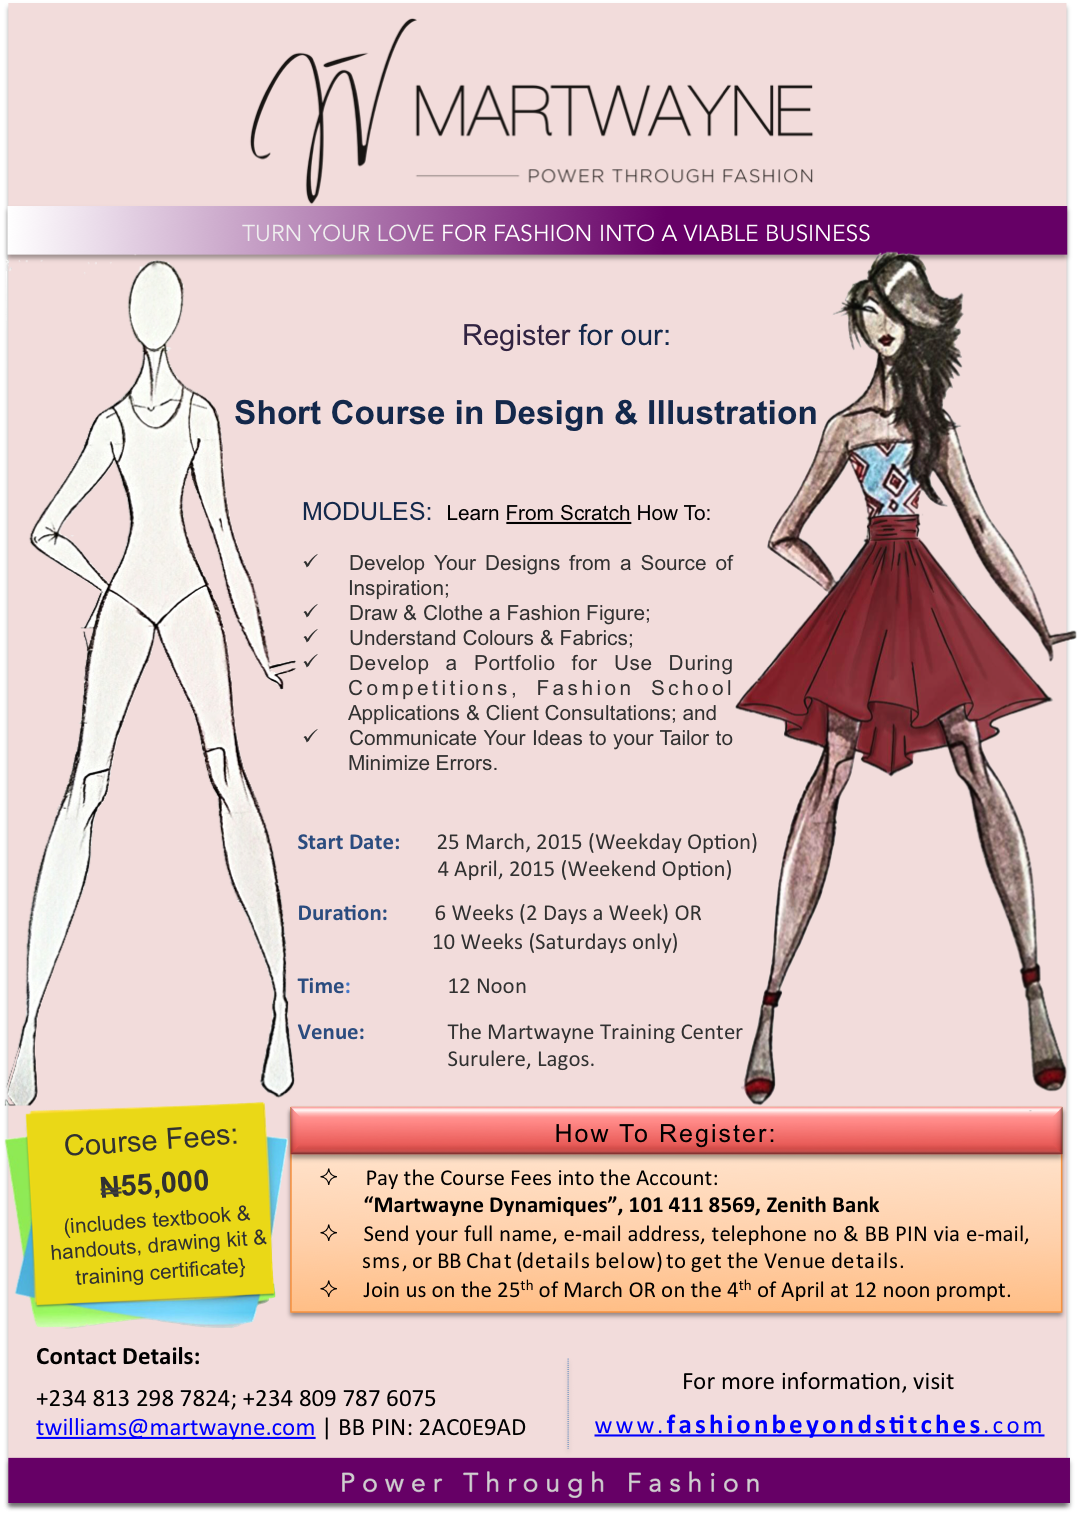 Register for the Short Course in Design & Illustration; Start Dates: 25 March & 4 April, 2015